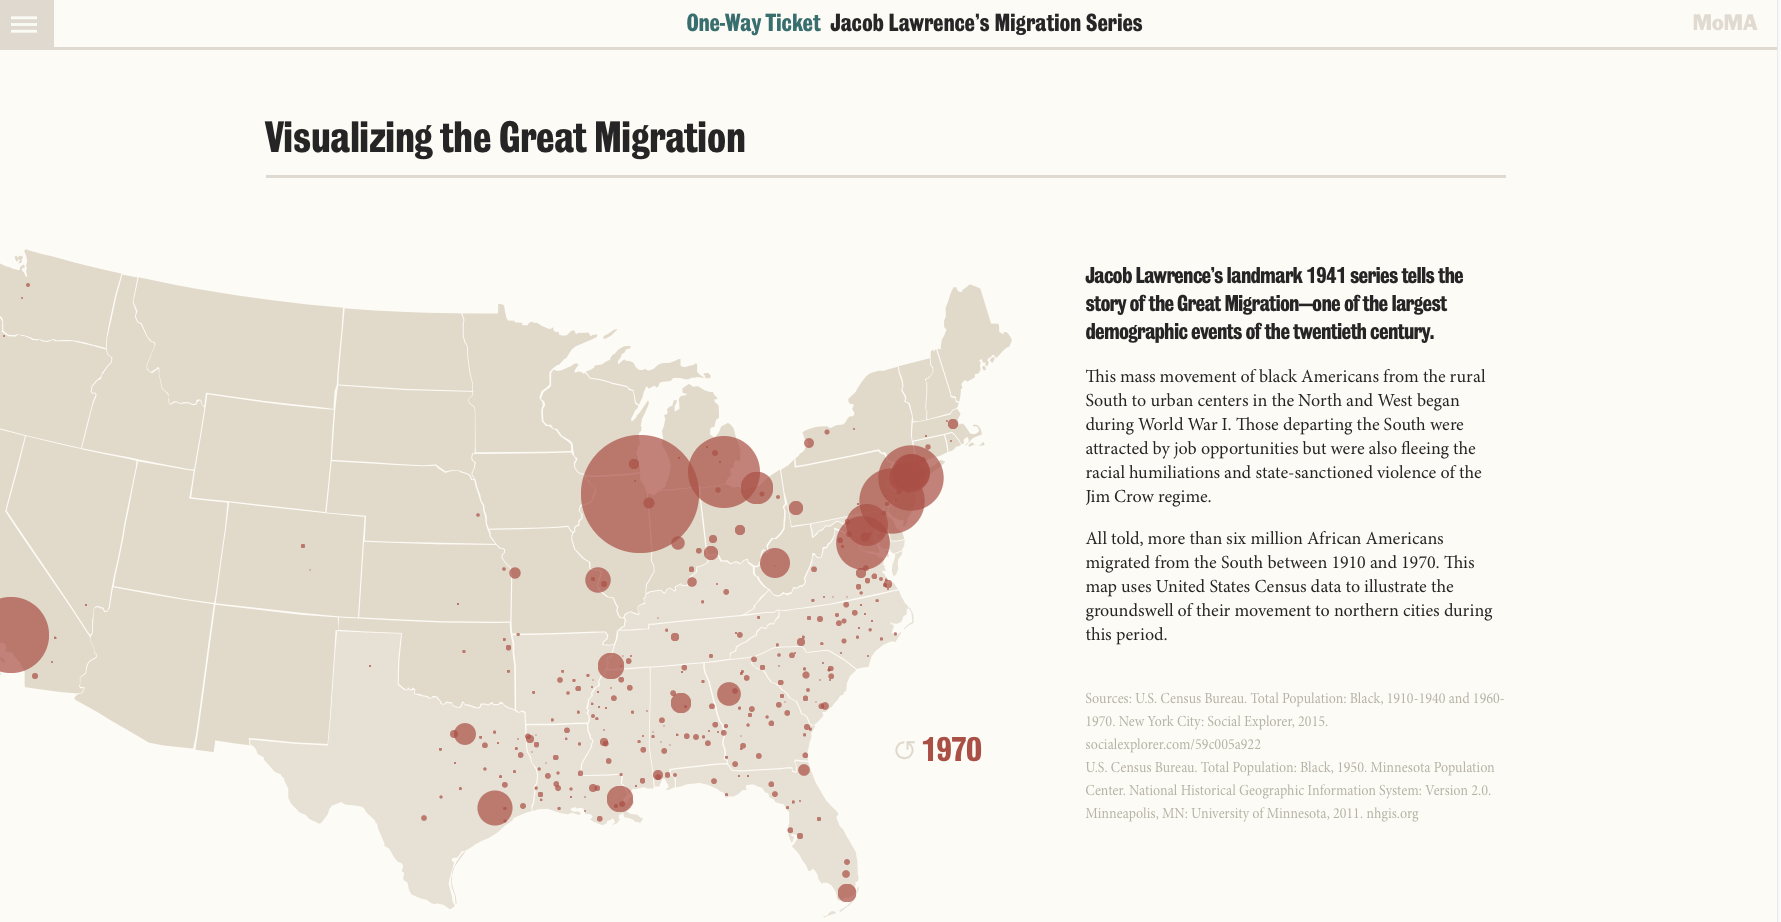 Museum of Modern Art's Visualizing the Great Migration screenshot